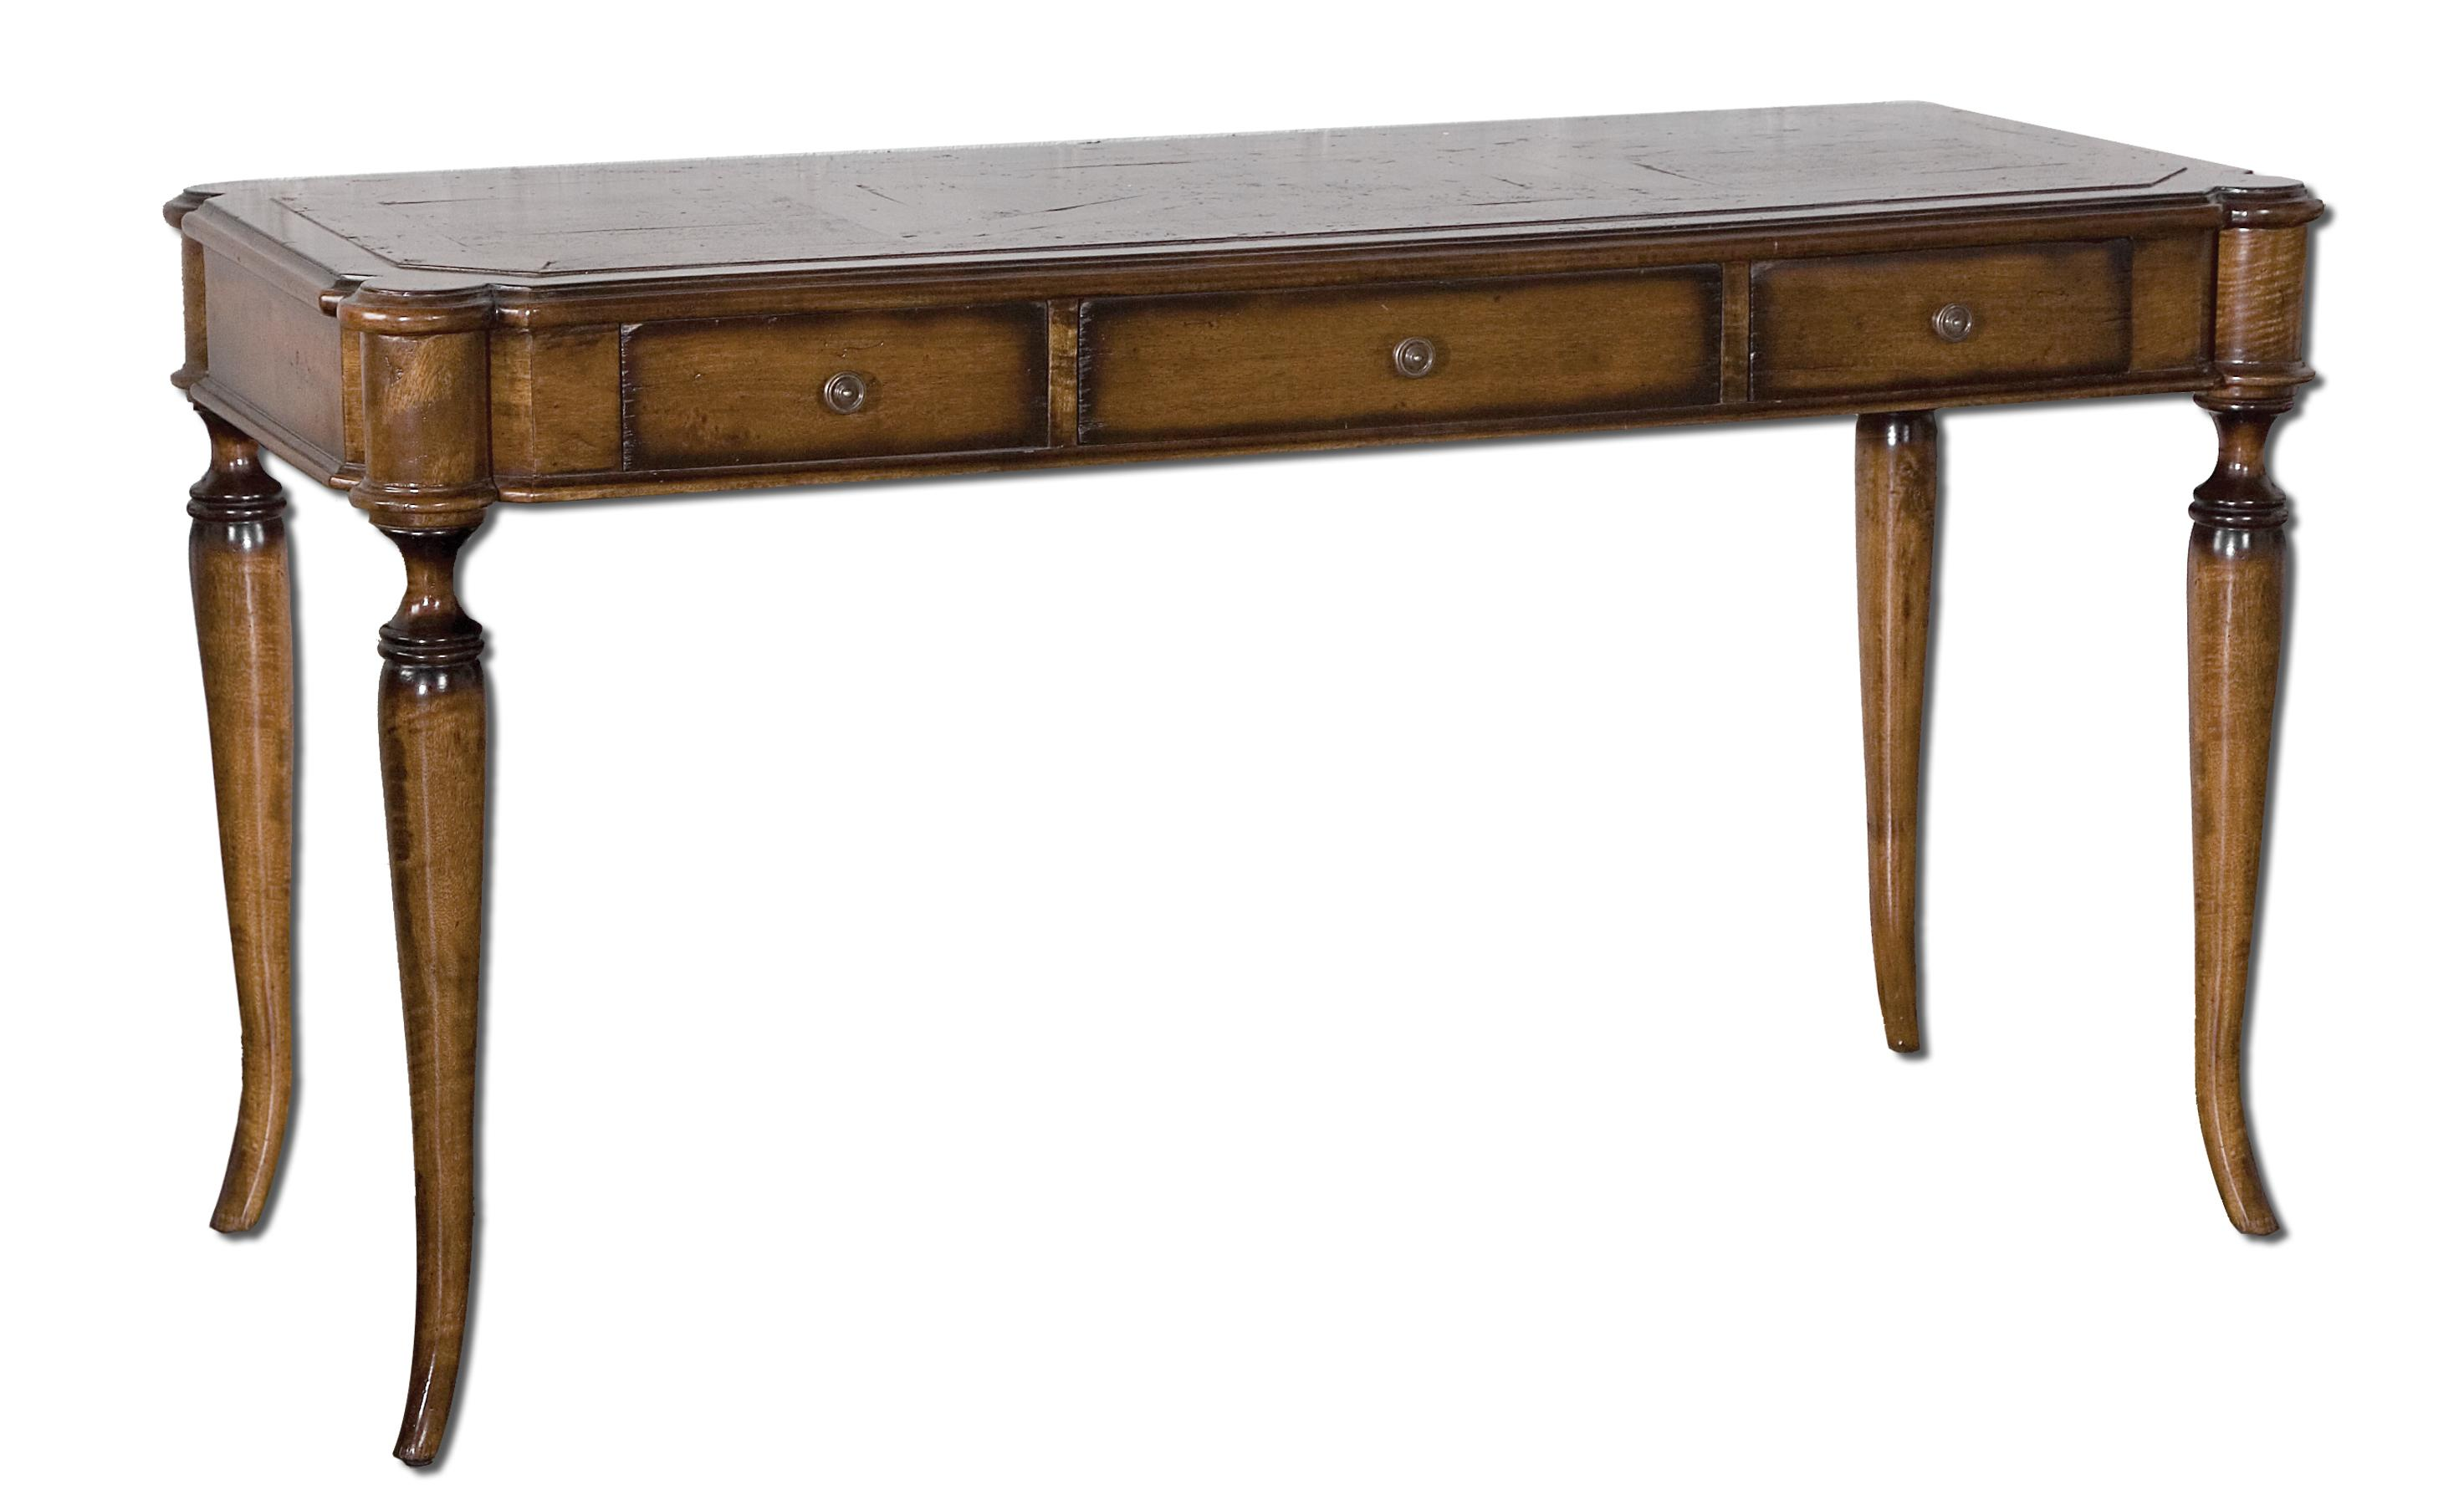 Uttermost Accent Furniture Colter Writing Desk - Item Number: 25574